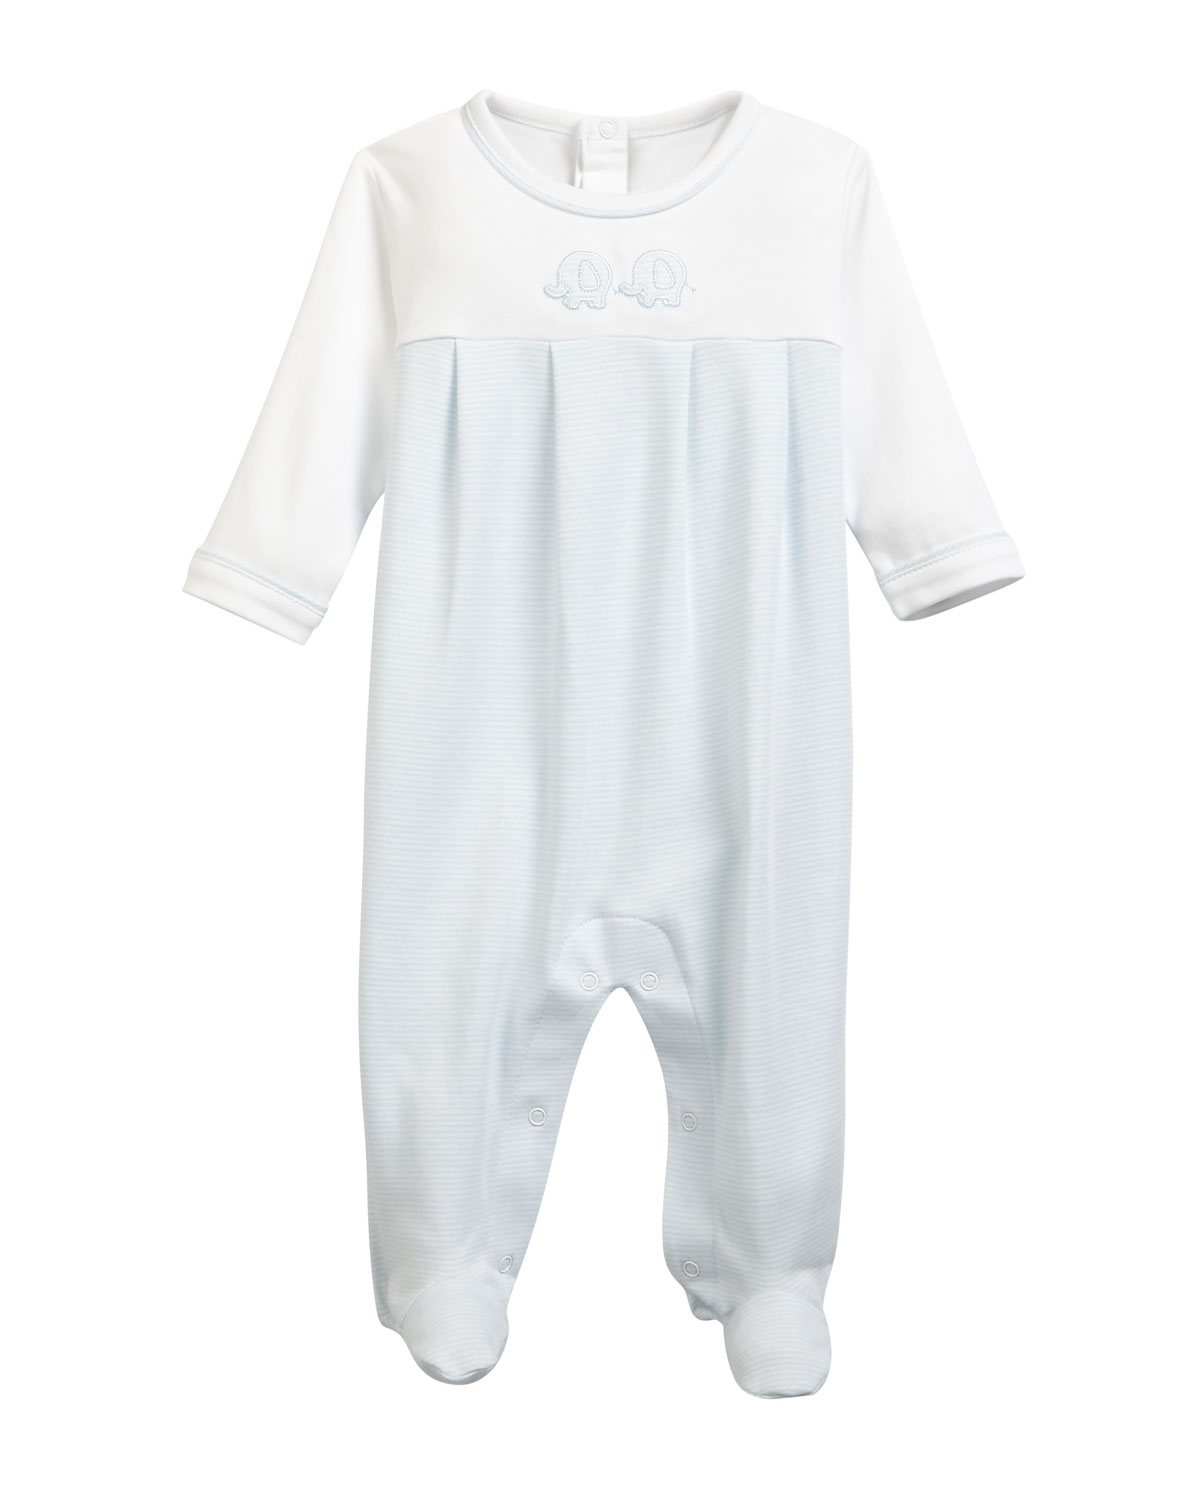 Trunk Mates Pima Footie Playsuit Size Newborn9M